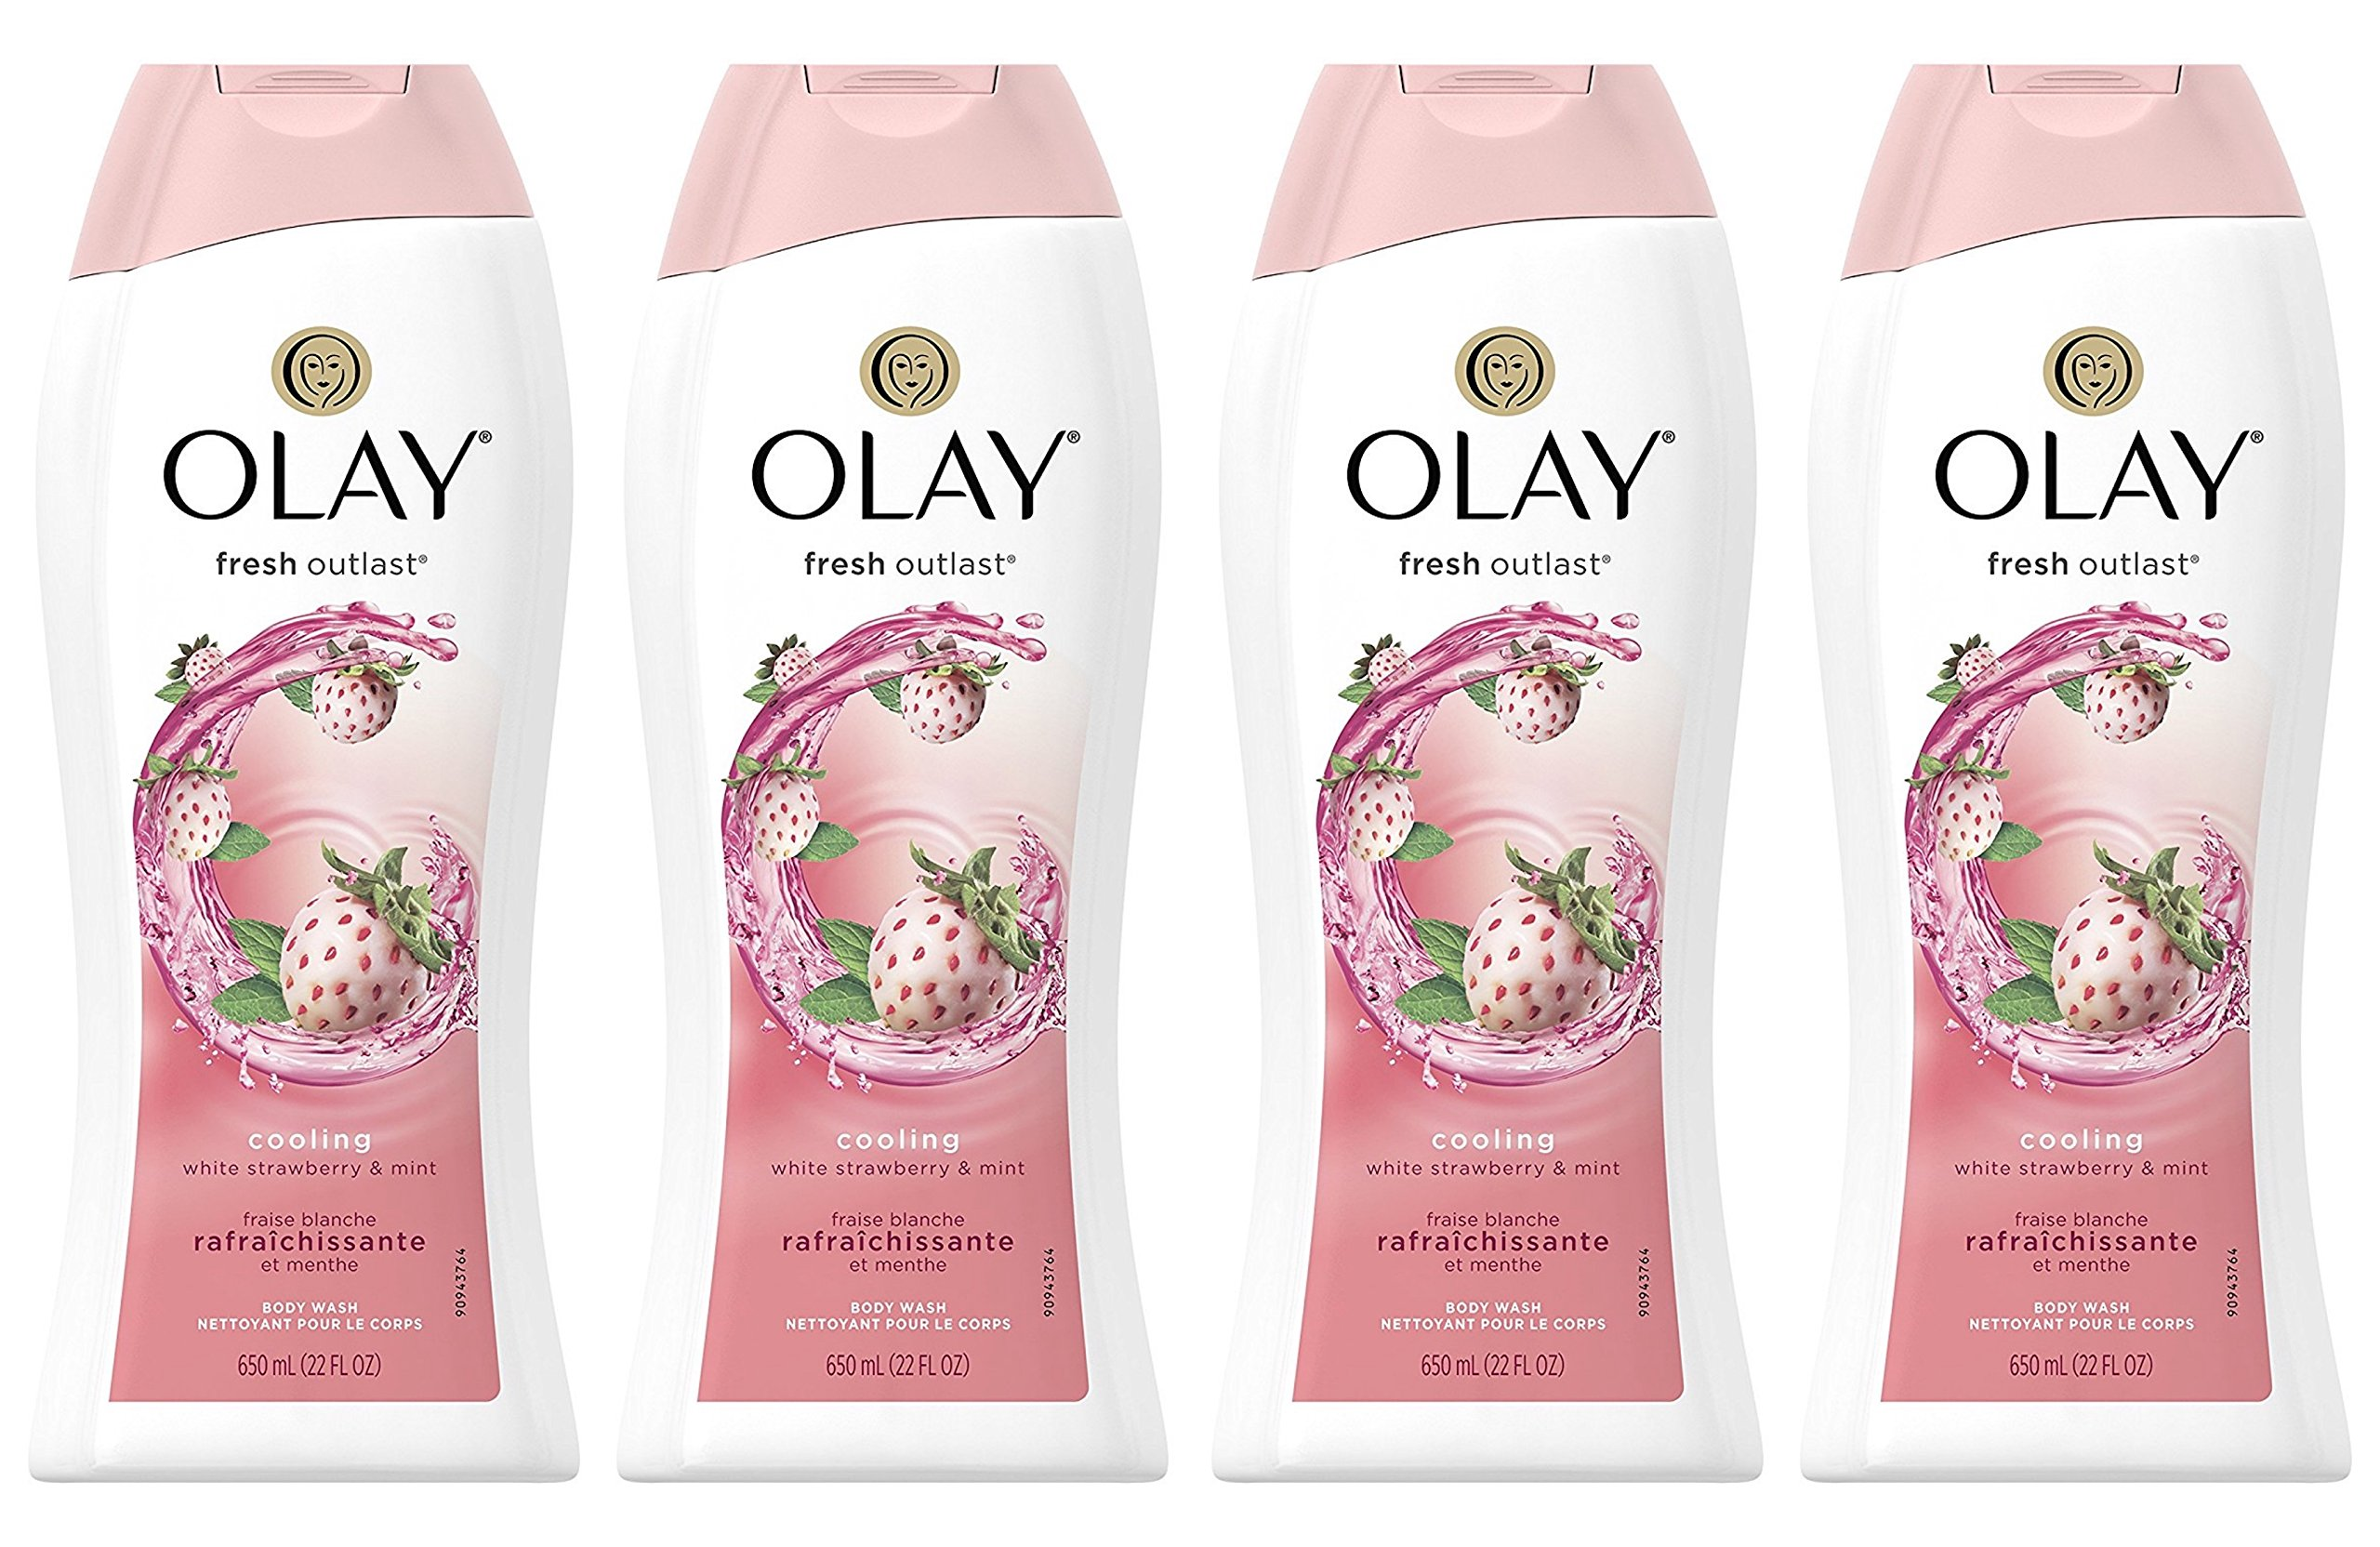 Body Wash for Women by Olay, Fresh Outlast Cooling White Strawberry & Mint Body Wash, 22 oz, (4 Count) by Olay